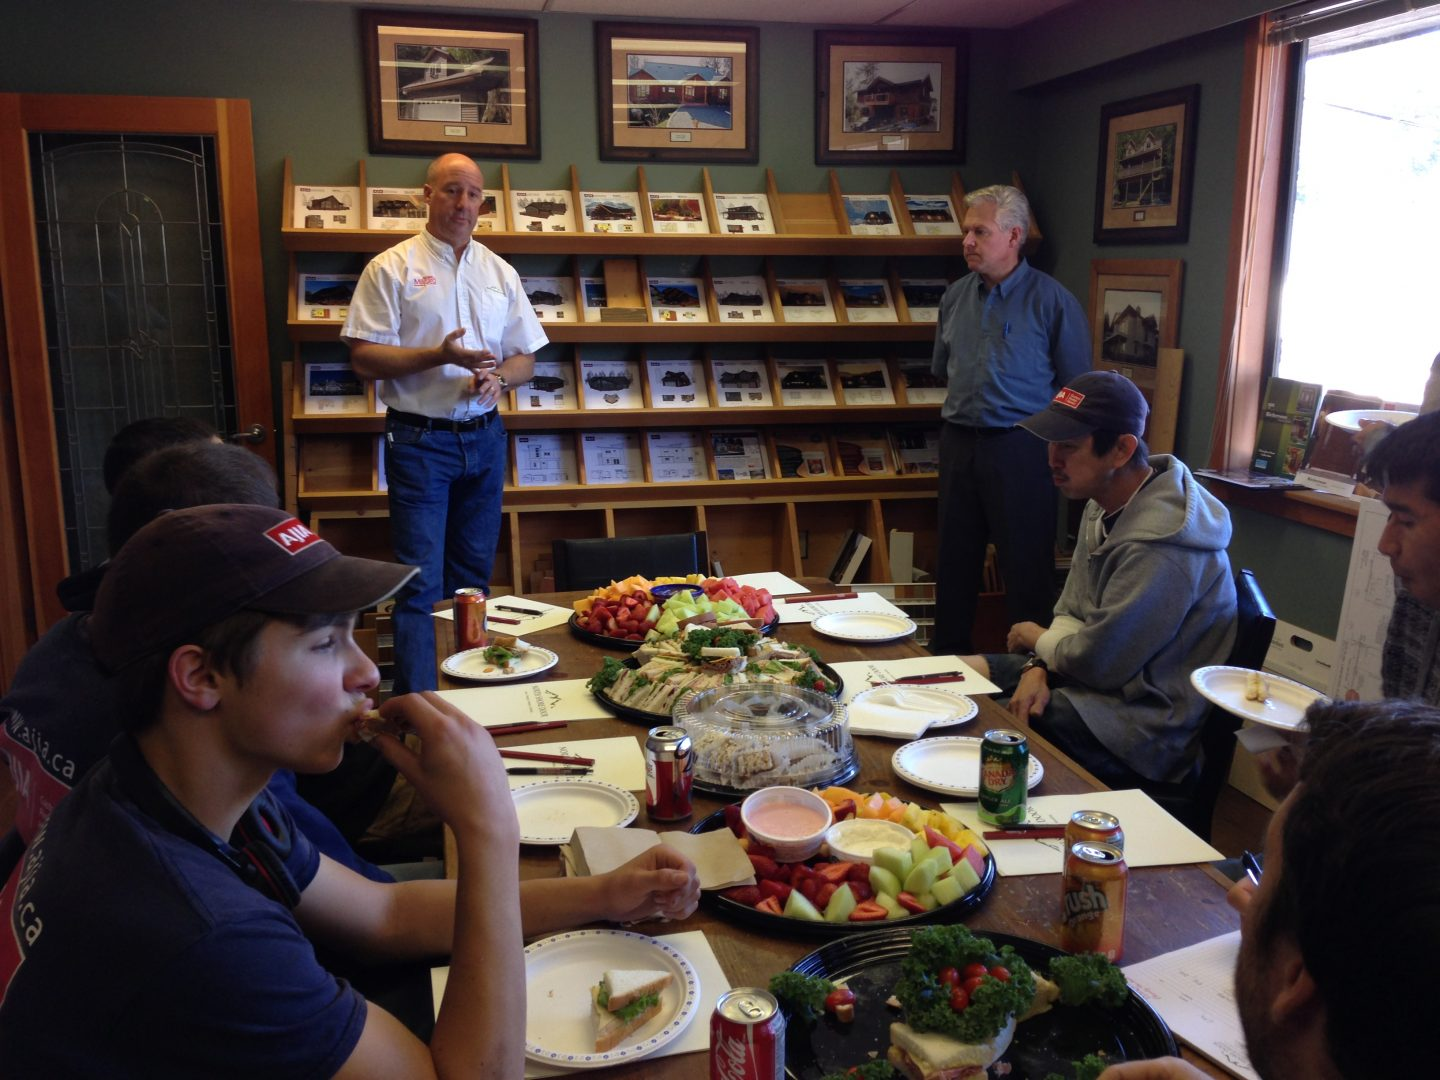 High Quality North Shore Door Joined Us Today For Our Lunch And Learn Session. Staff  Learned About Their High Quality Product Lines And Finishes And Their  Warranty And ...